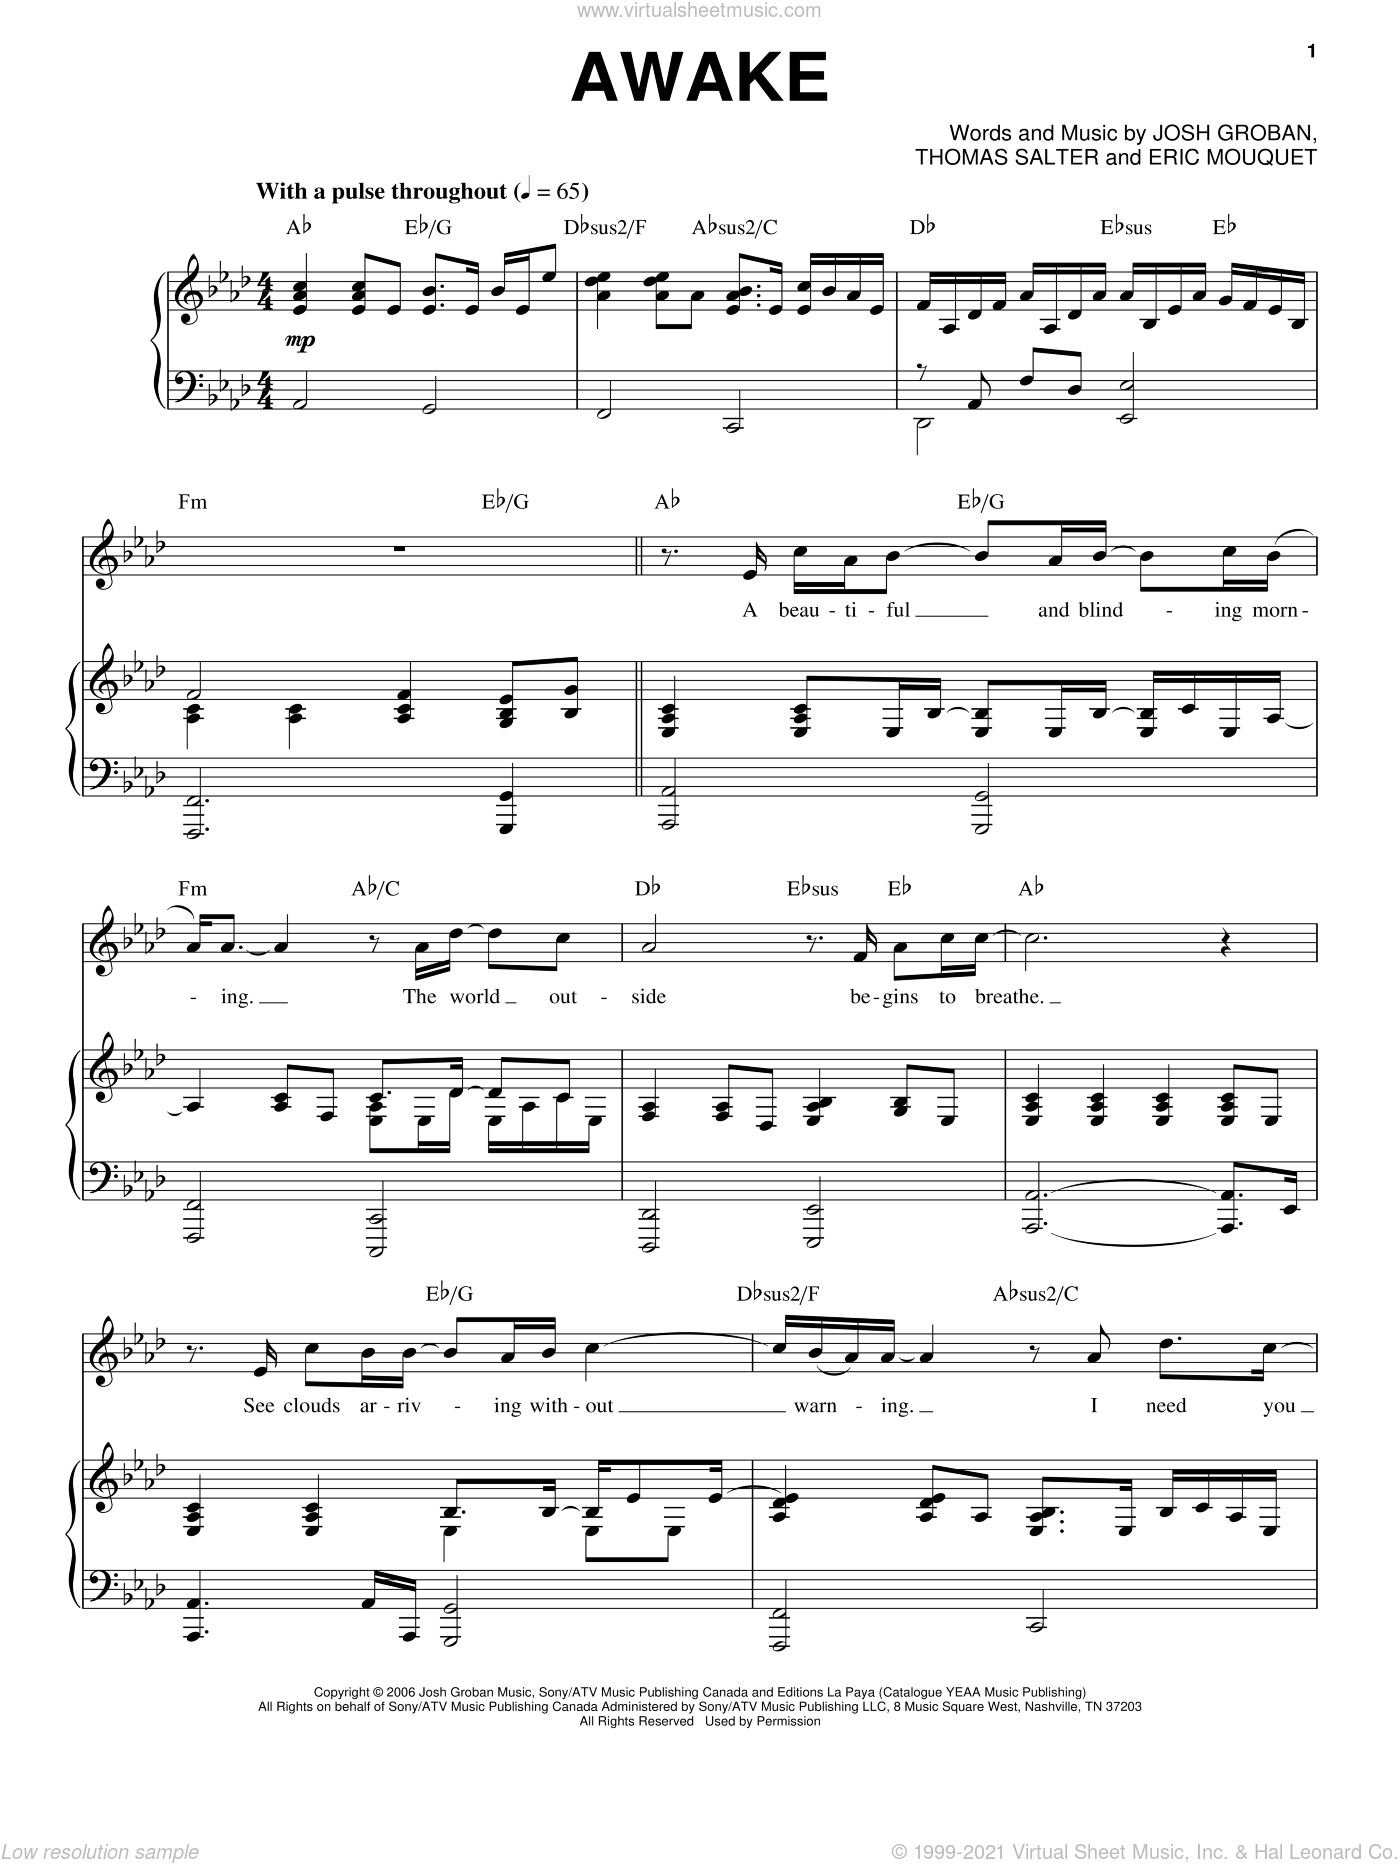 Awake sheet music for voice and piano by Thomas Salter